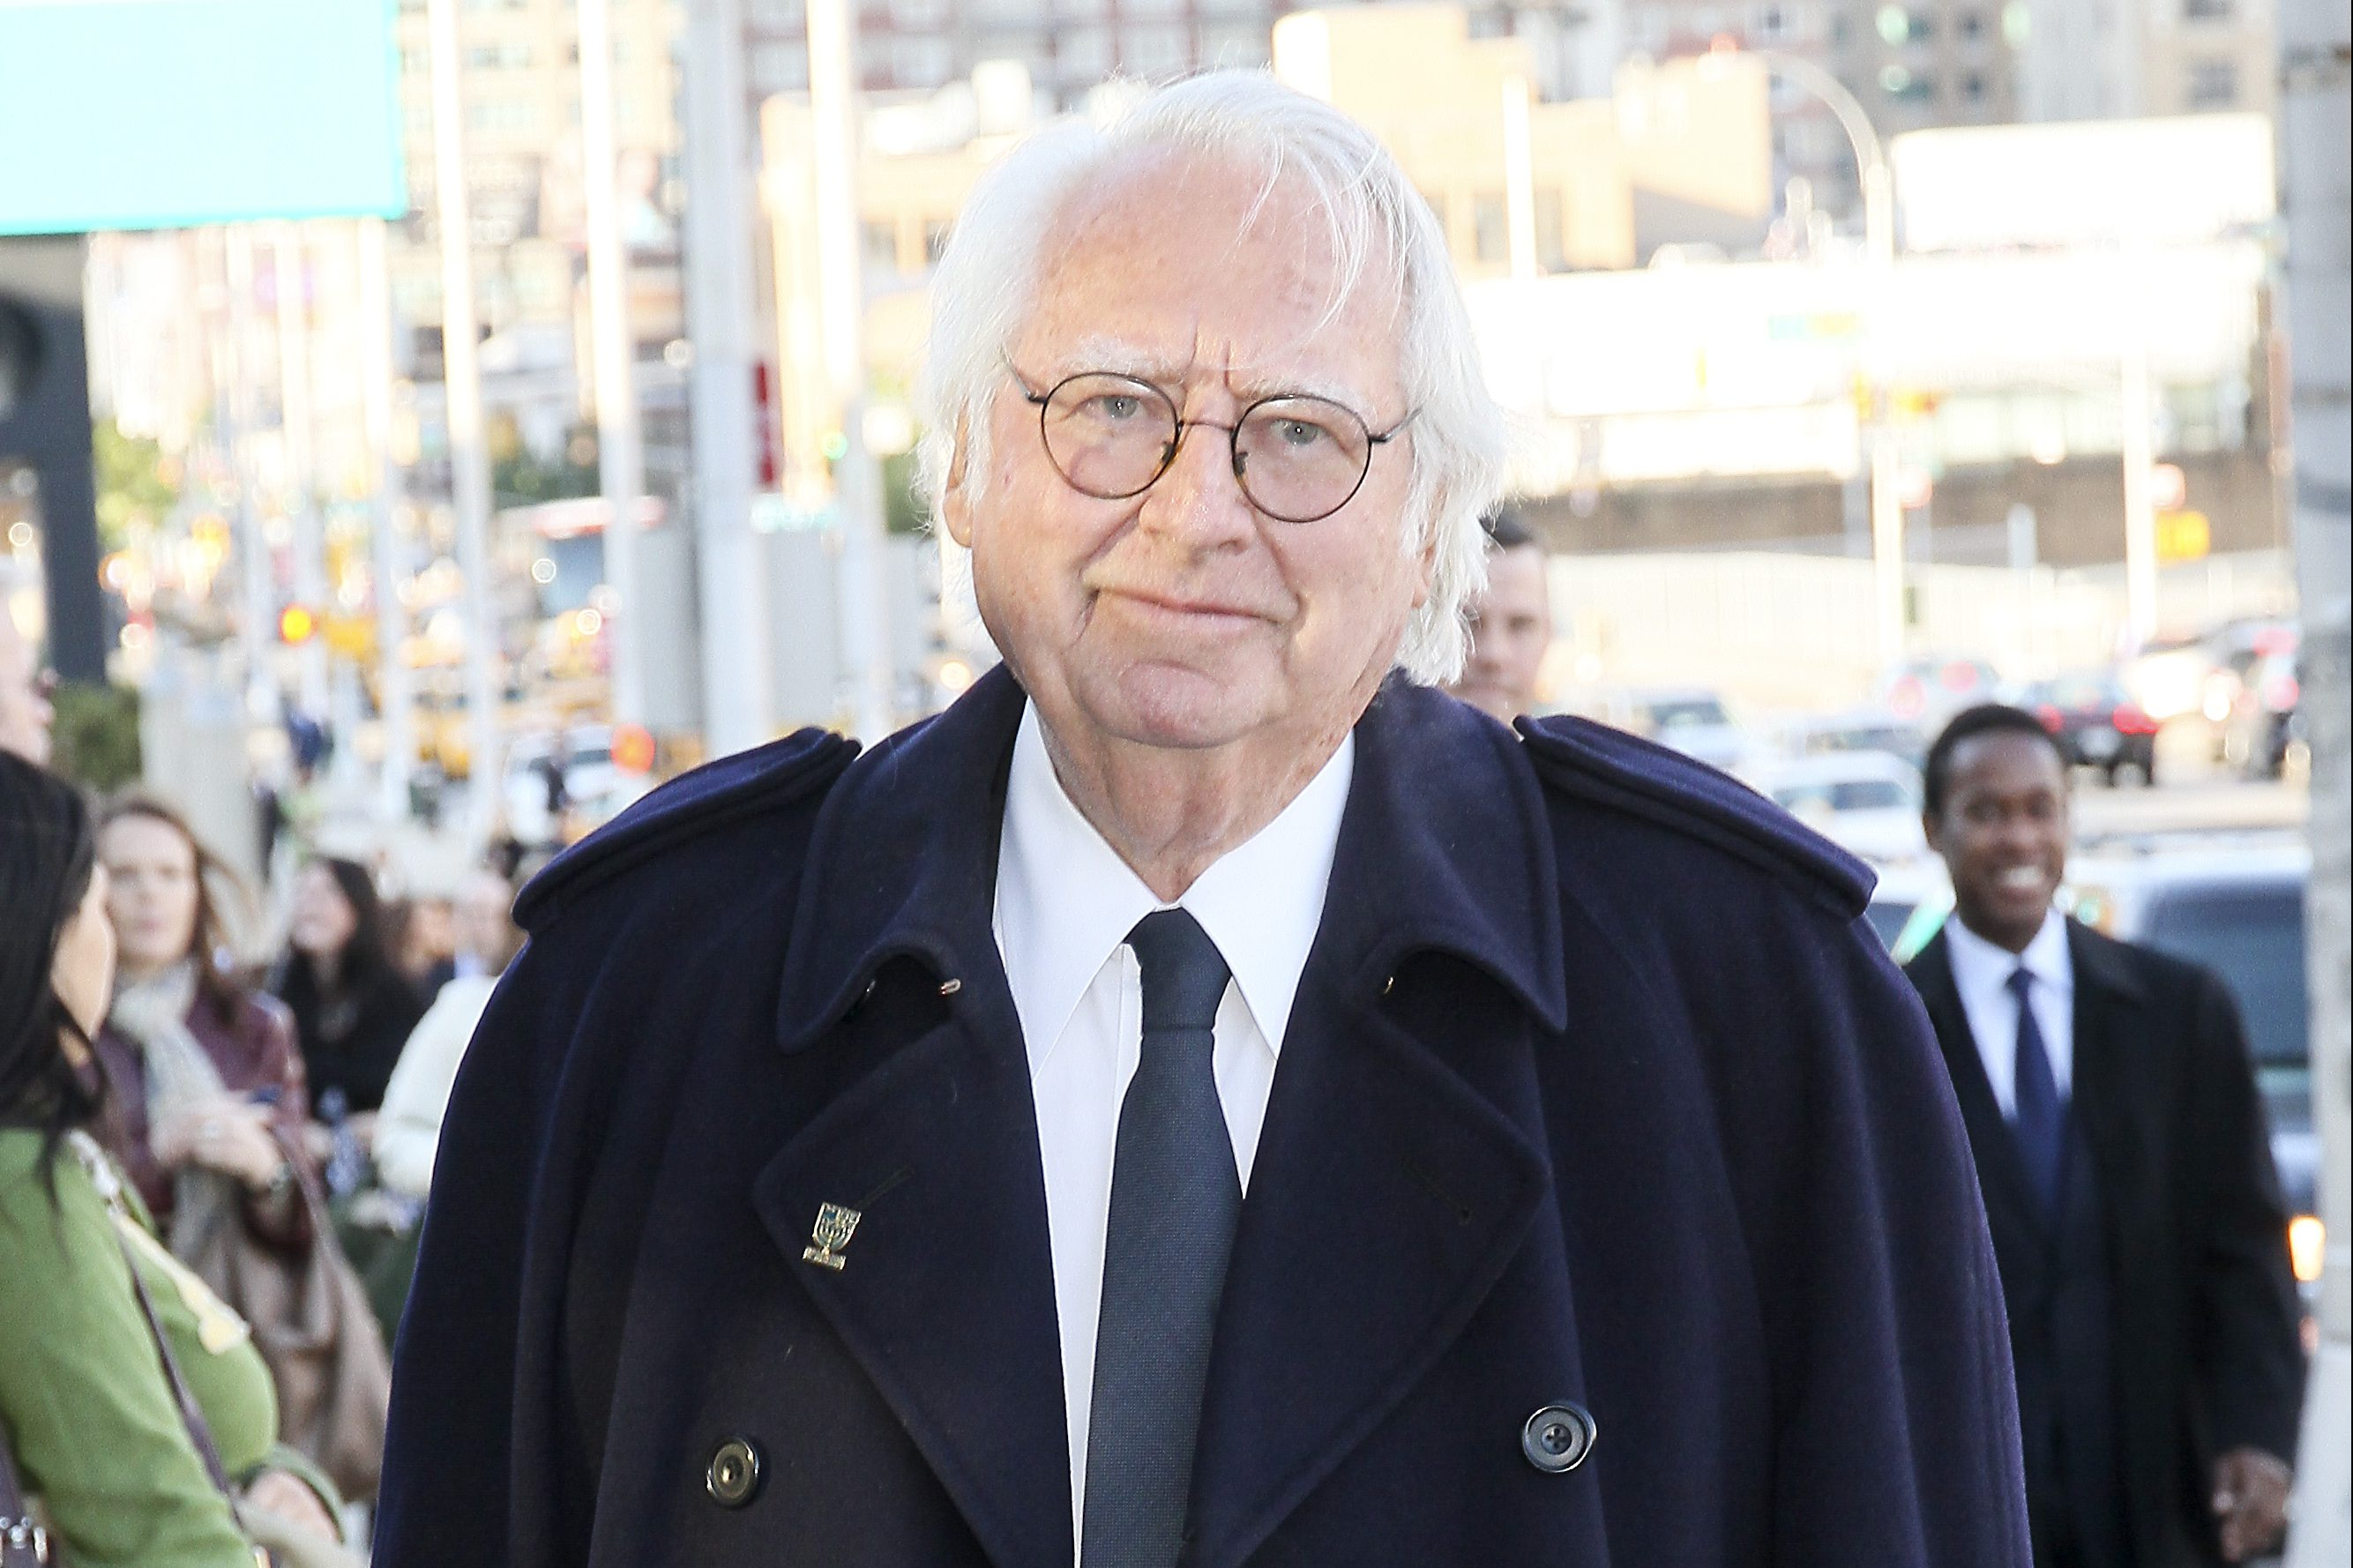 Architect Richard Meier arrives for the Robin Hood Foundation gala in New York, U.S., on Monday, May 10, 2010.